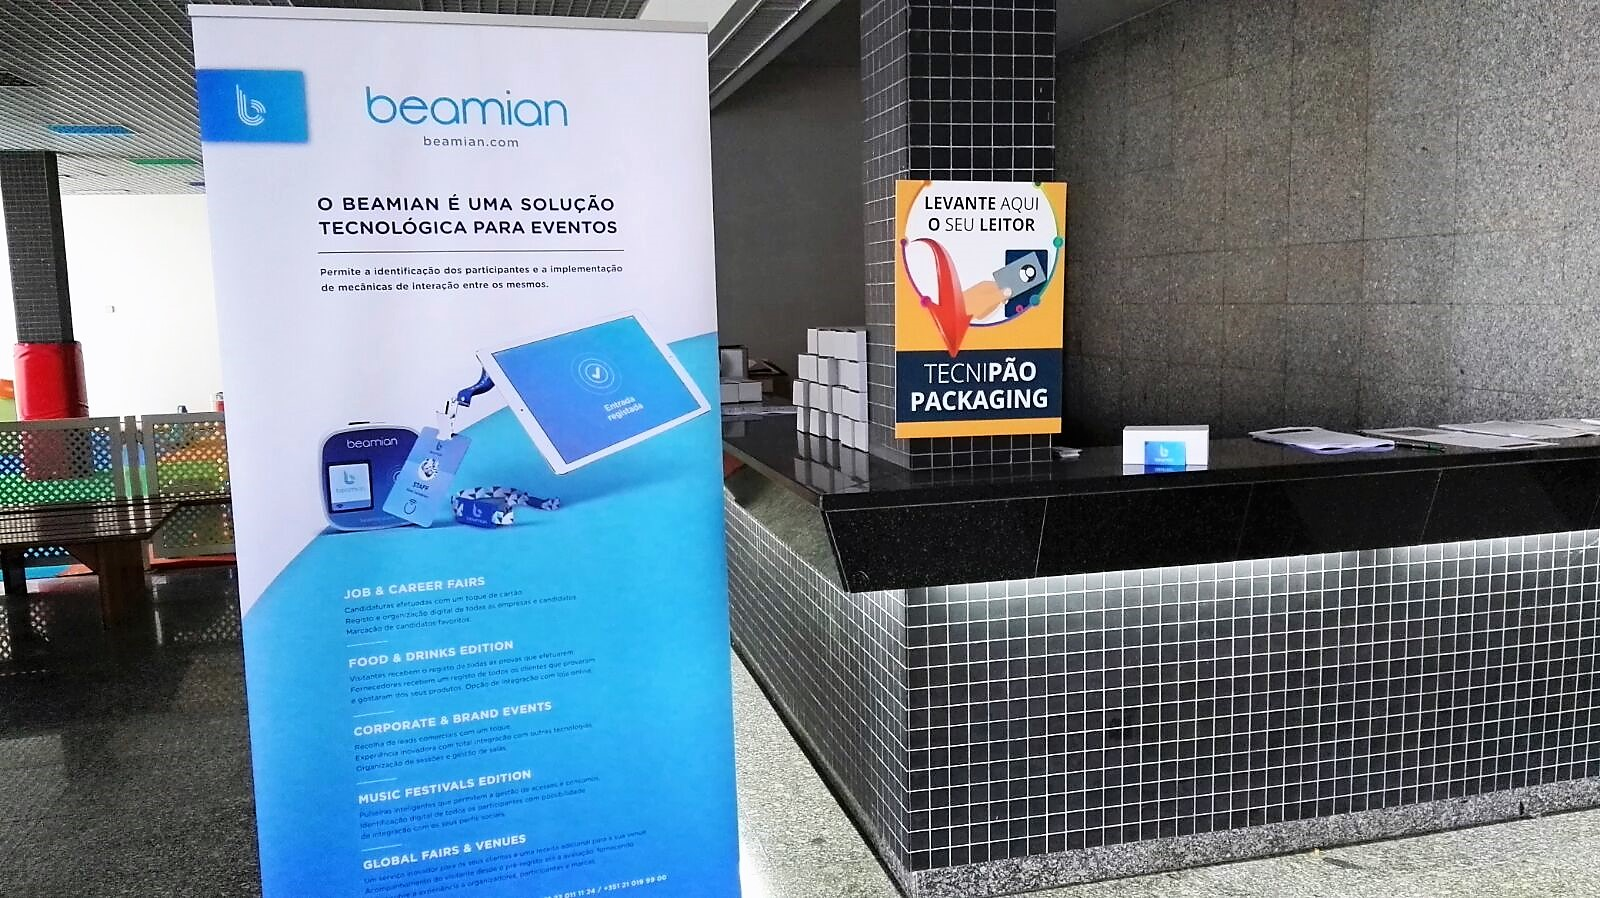 beamian at the Tecnipão – Packaging 2018 trade fair